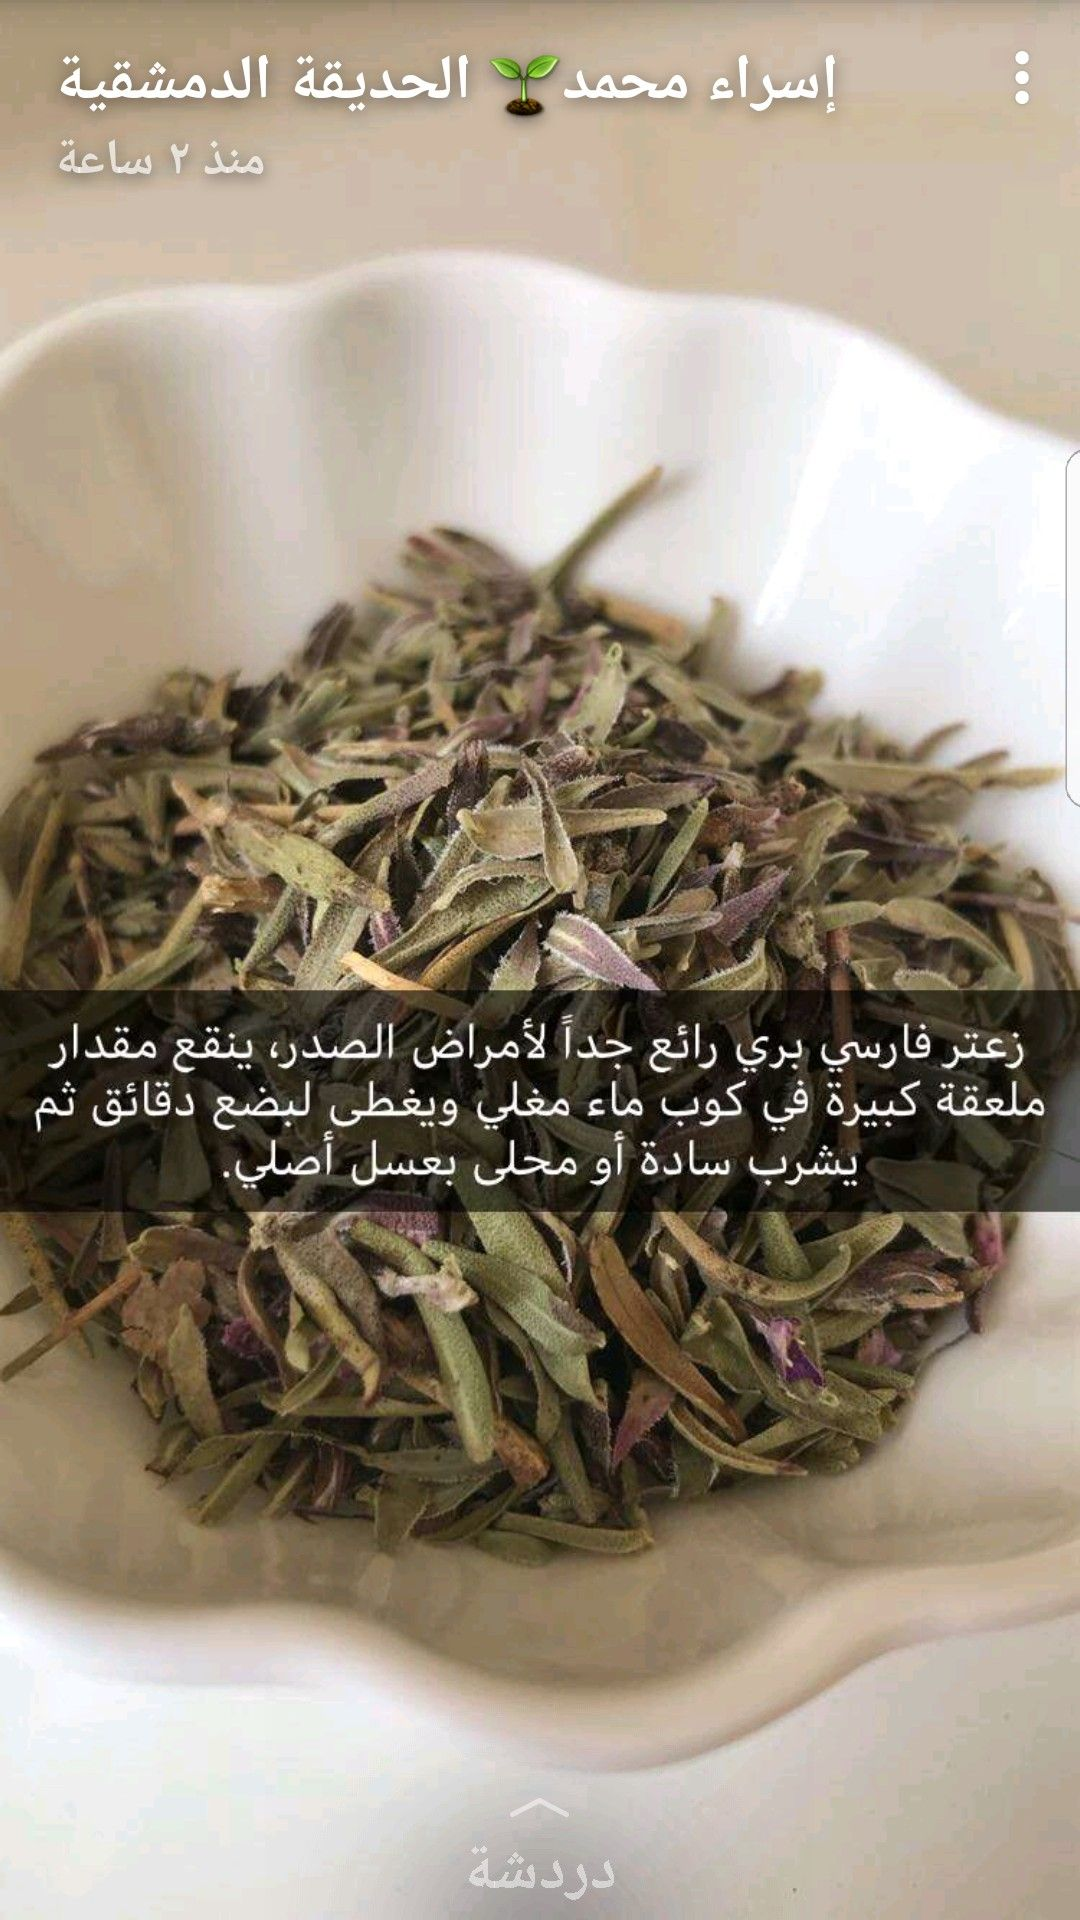 Pin By Fato On ٠١٩٢٨ Health And Nutrition Herbs For Health Health Diet